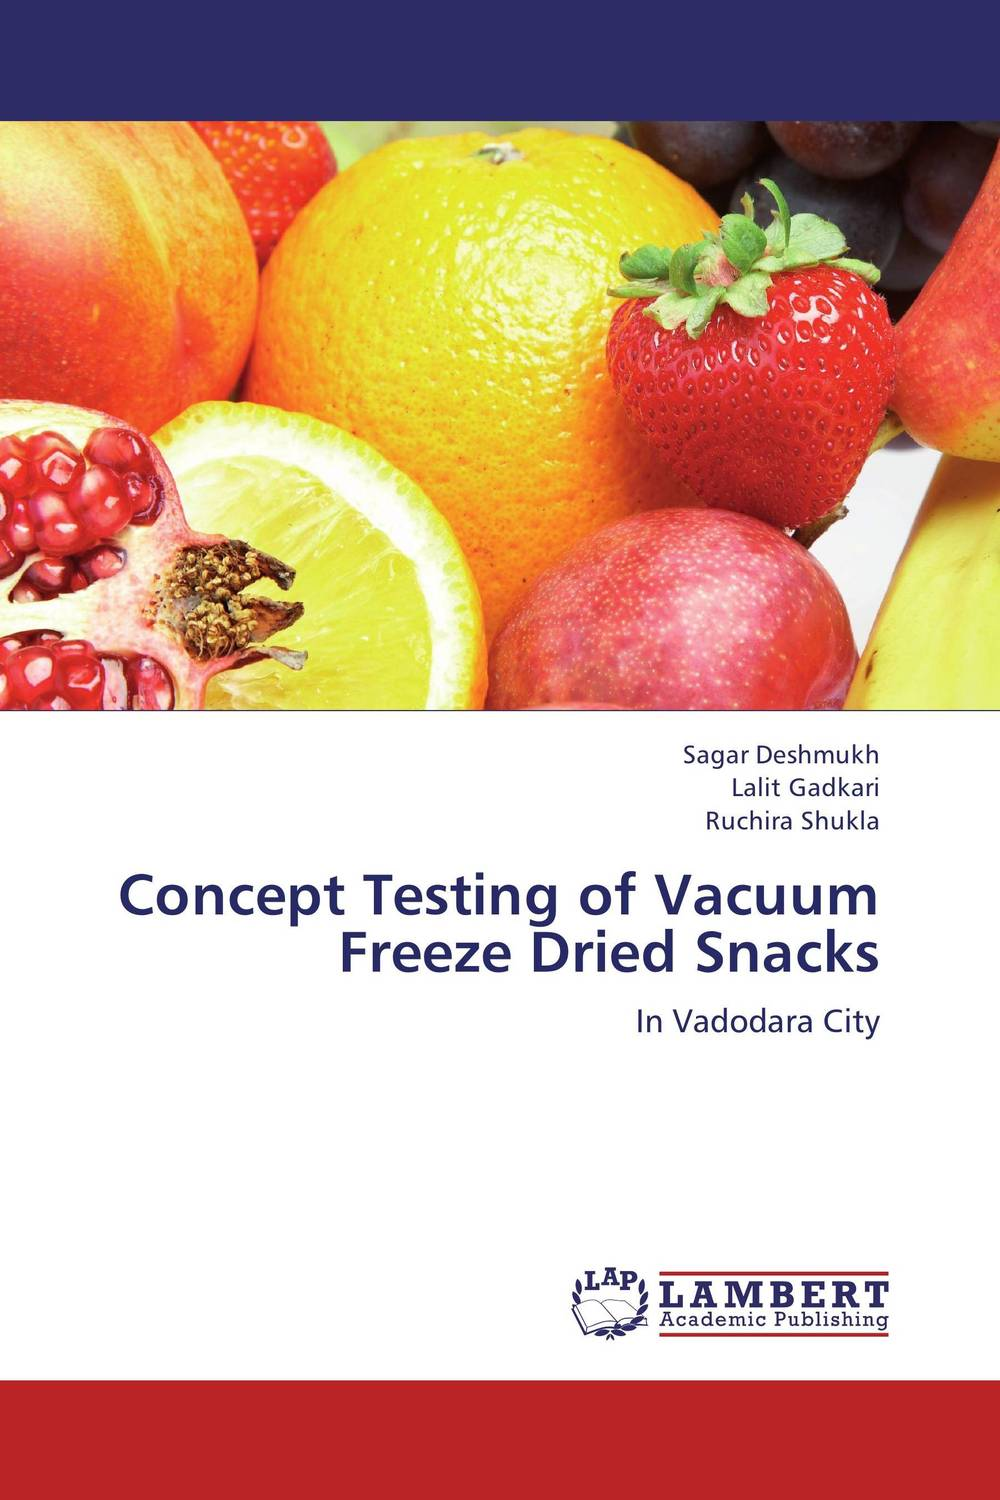 Concept Testing of Vacuum Freeze Dried Snacks vfd037cp43b 21 delta vfd cp2000 vfd inverter frequency converter 3 7kw 5hp 3ph ac380 480v 600hz fan and water pump